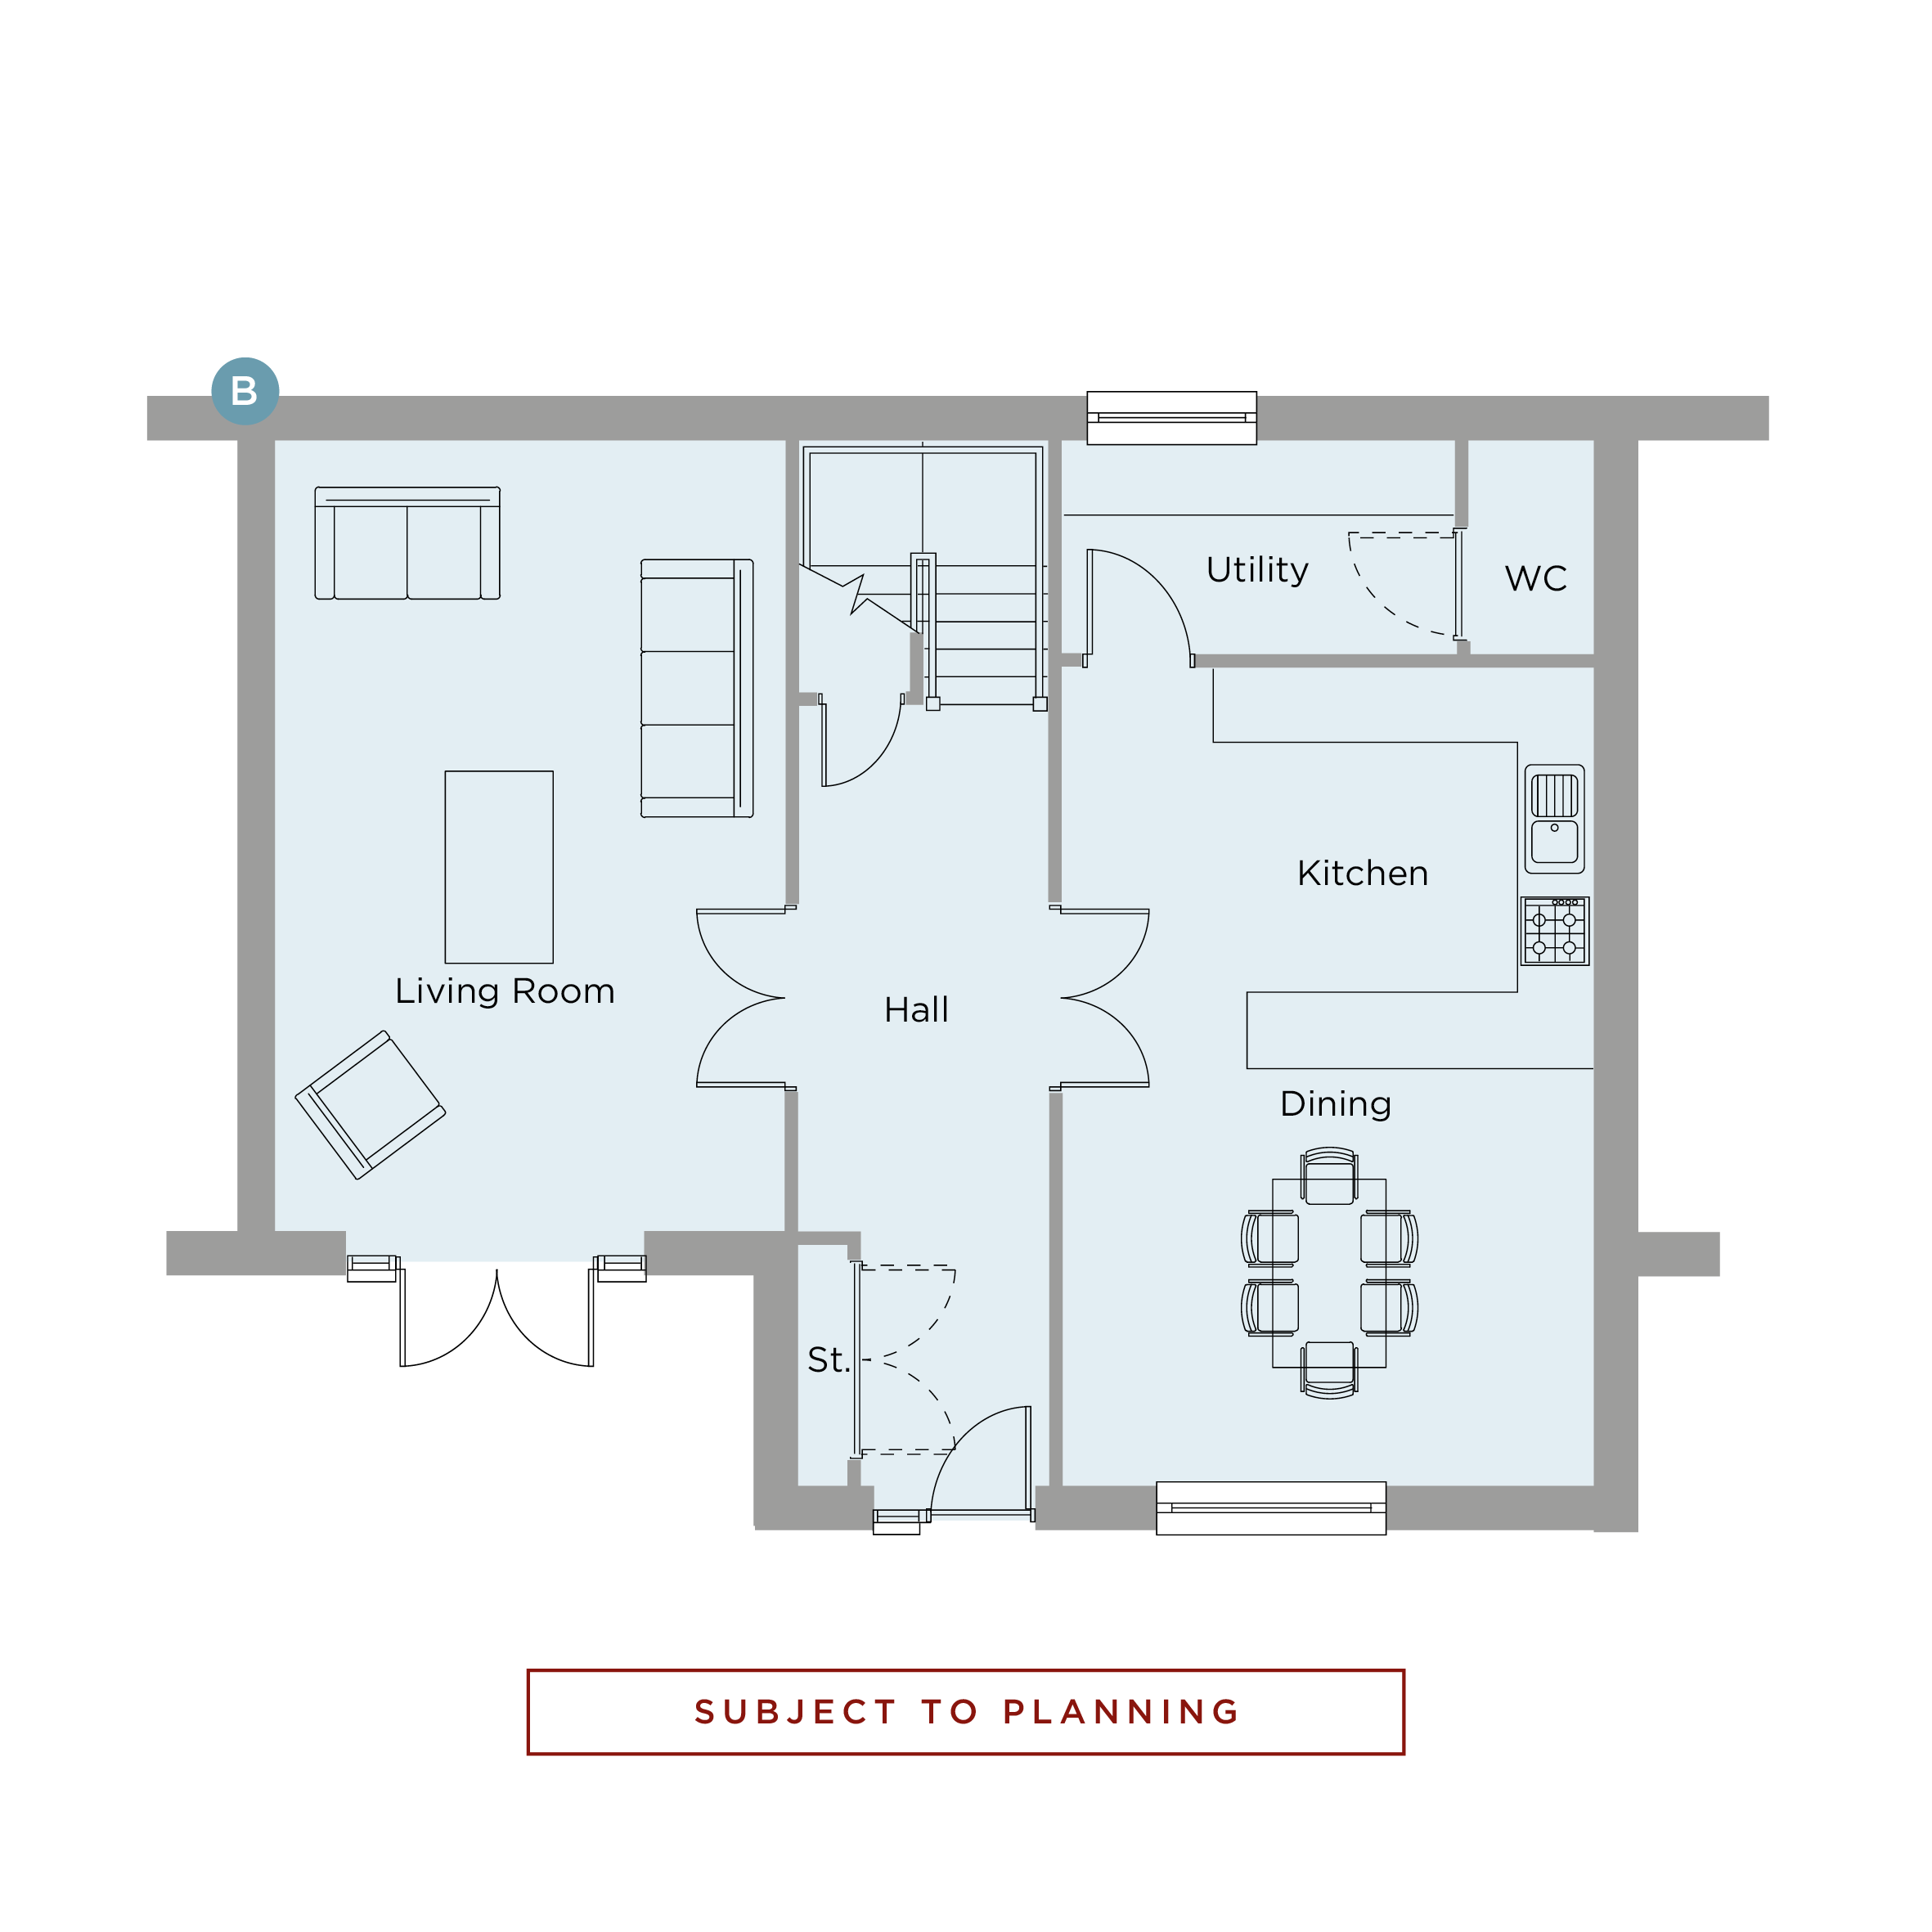 mulberry_vale_skipwith_floor_plans_11.png